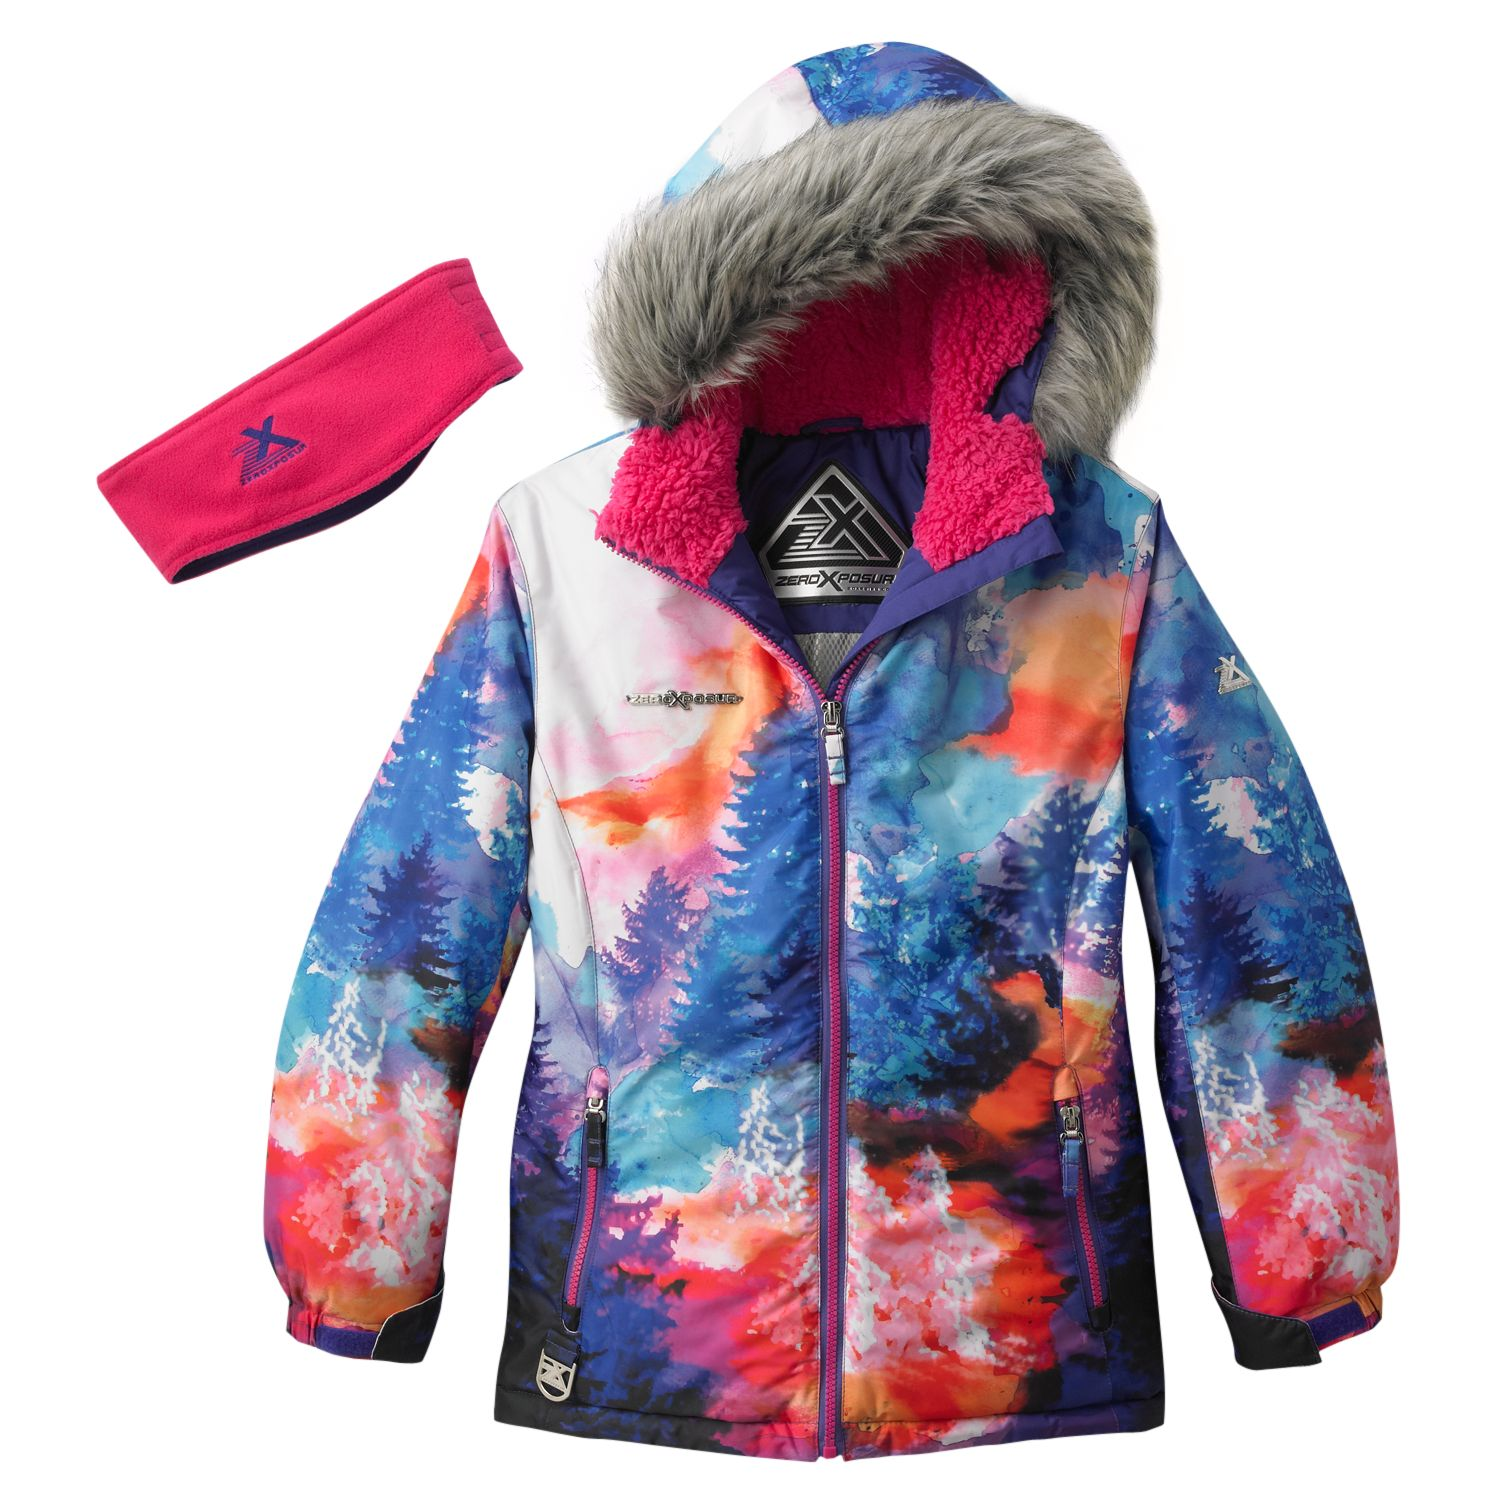 Kohls Zero Exposure Jackets Girls